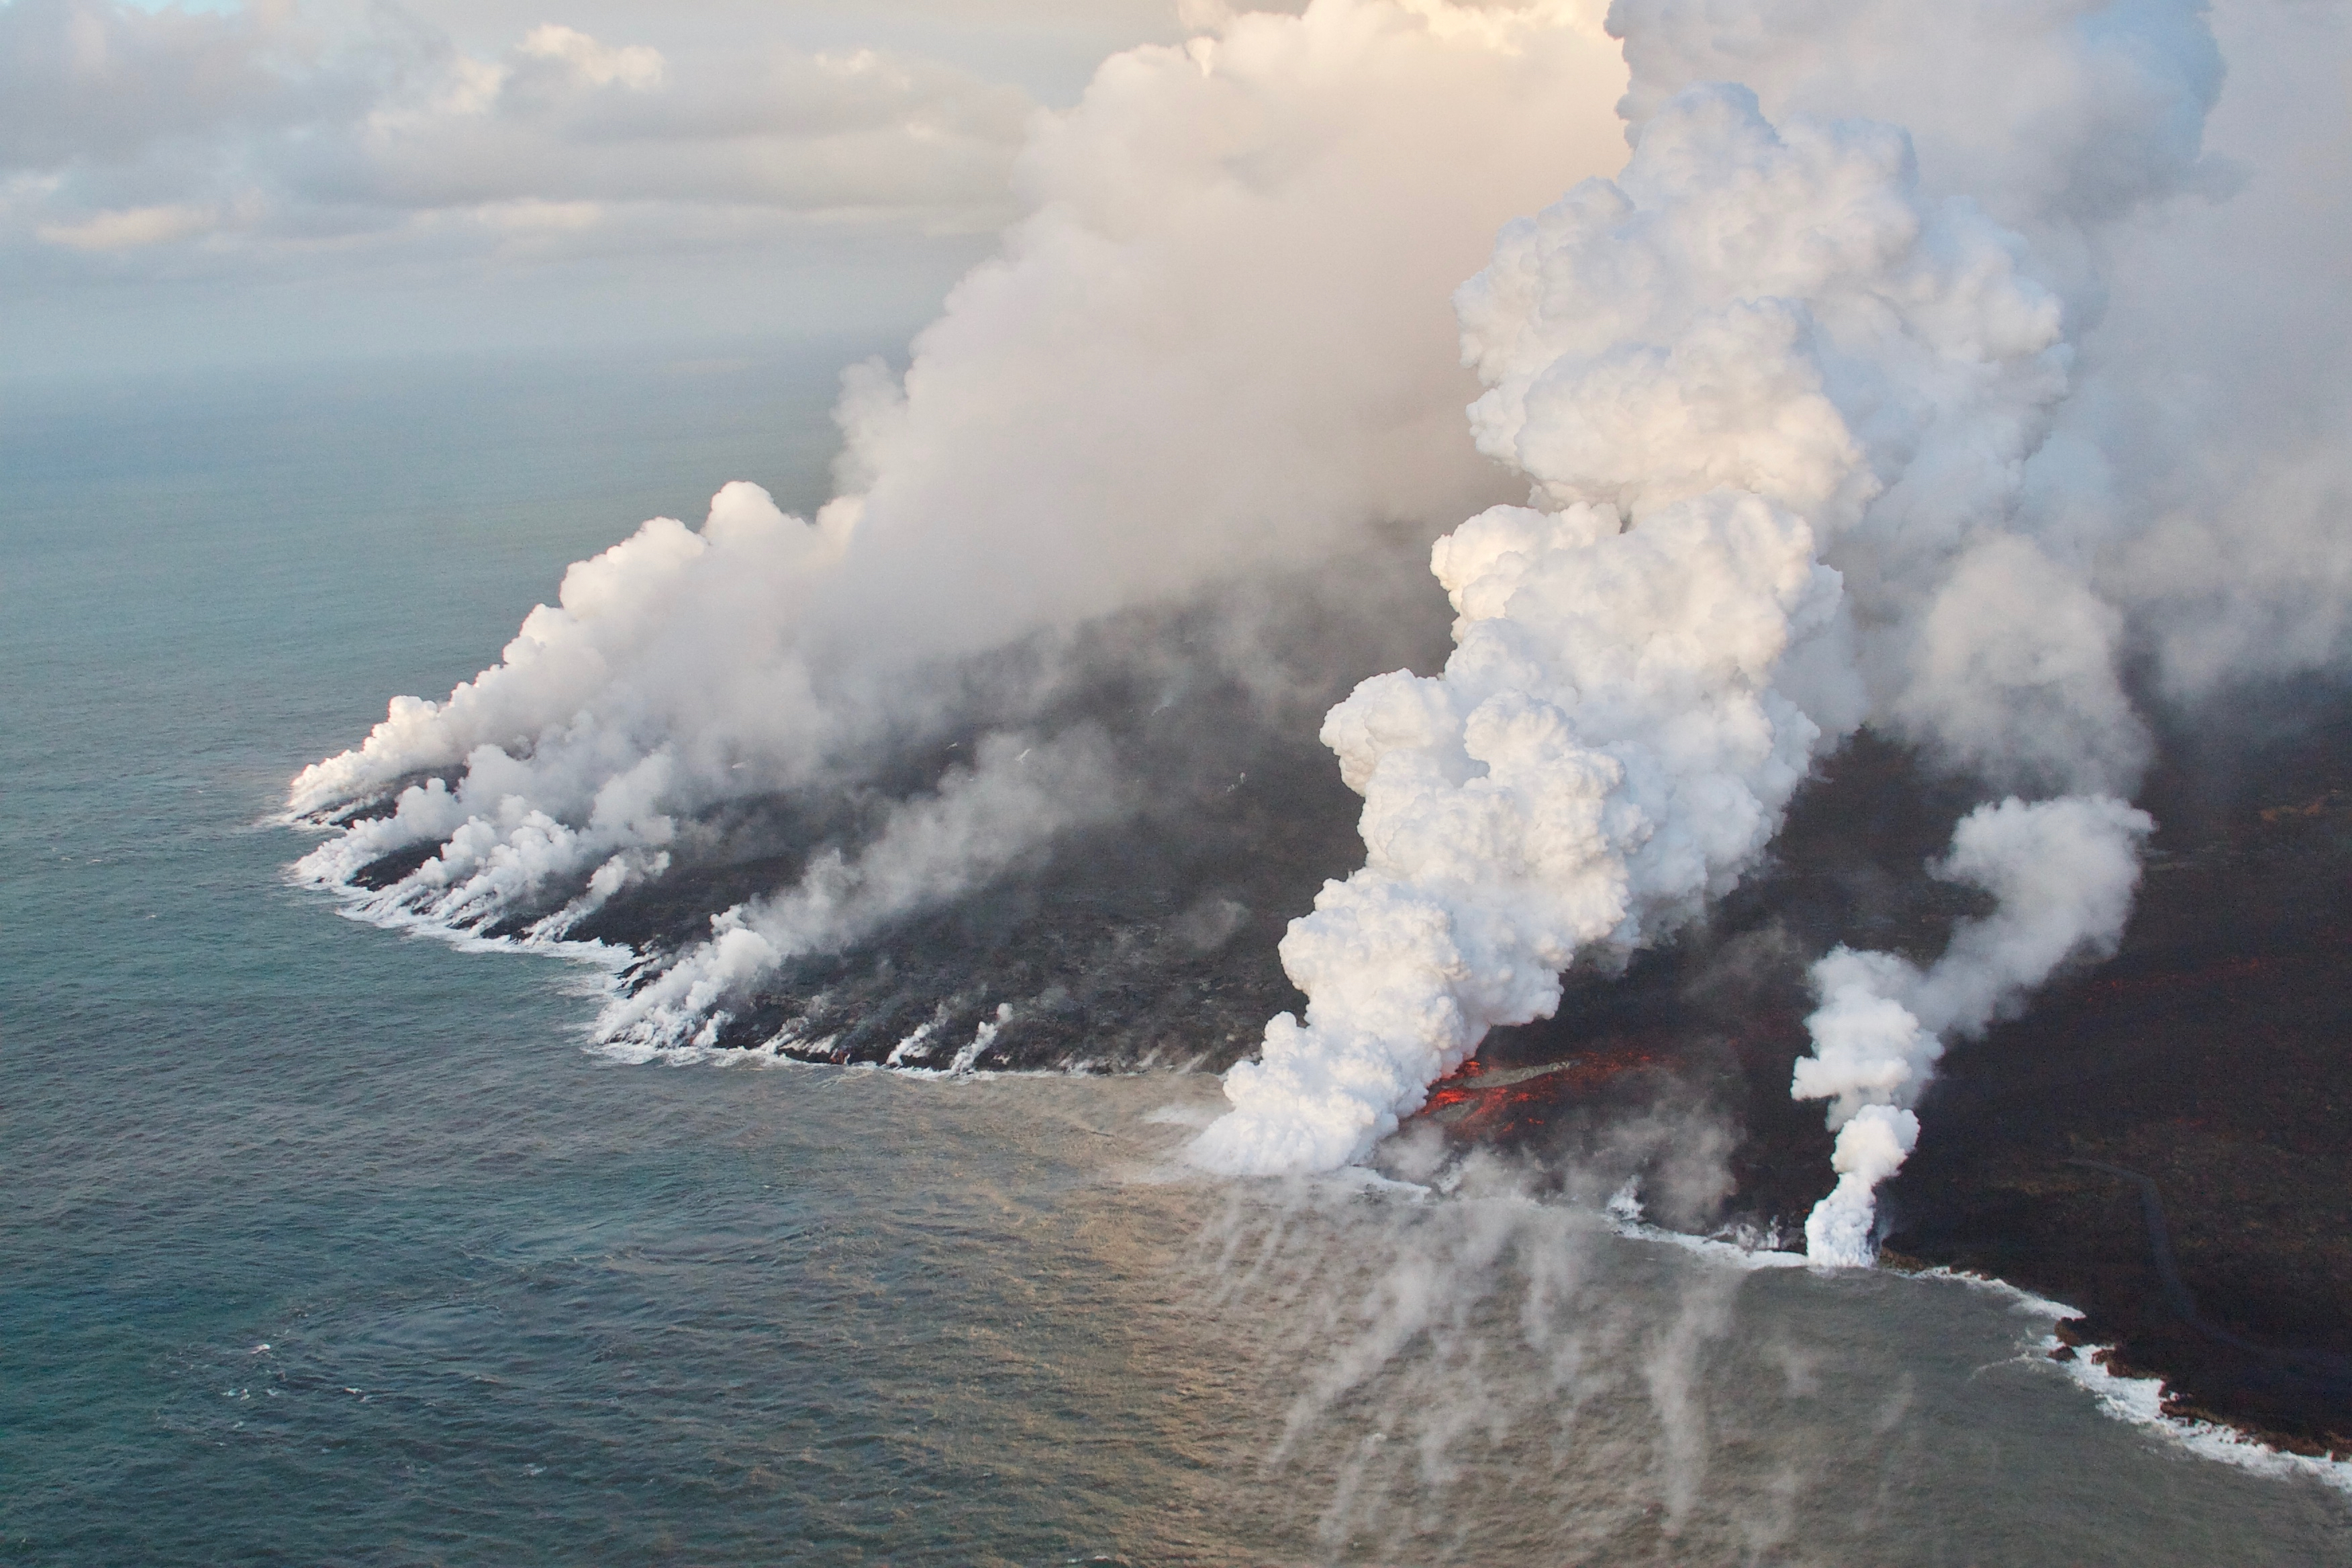 https://volcanoes.usgs.gov/observatories/hvo/multimedia_uploads/multimediaFile-2372.jpg